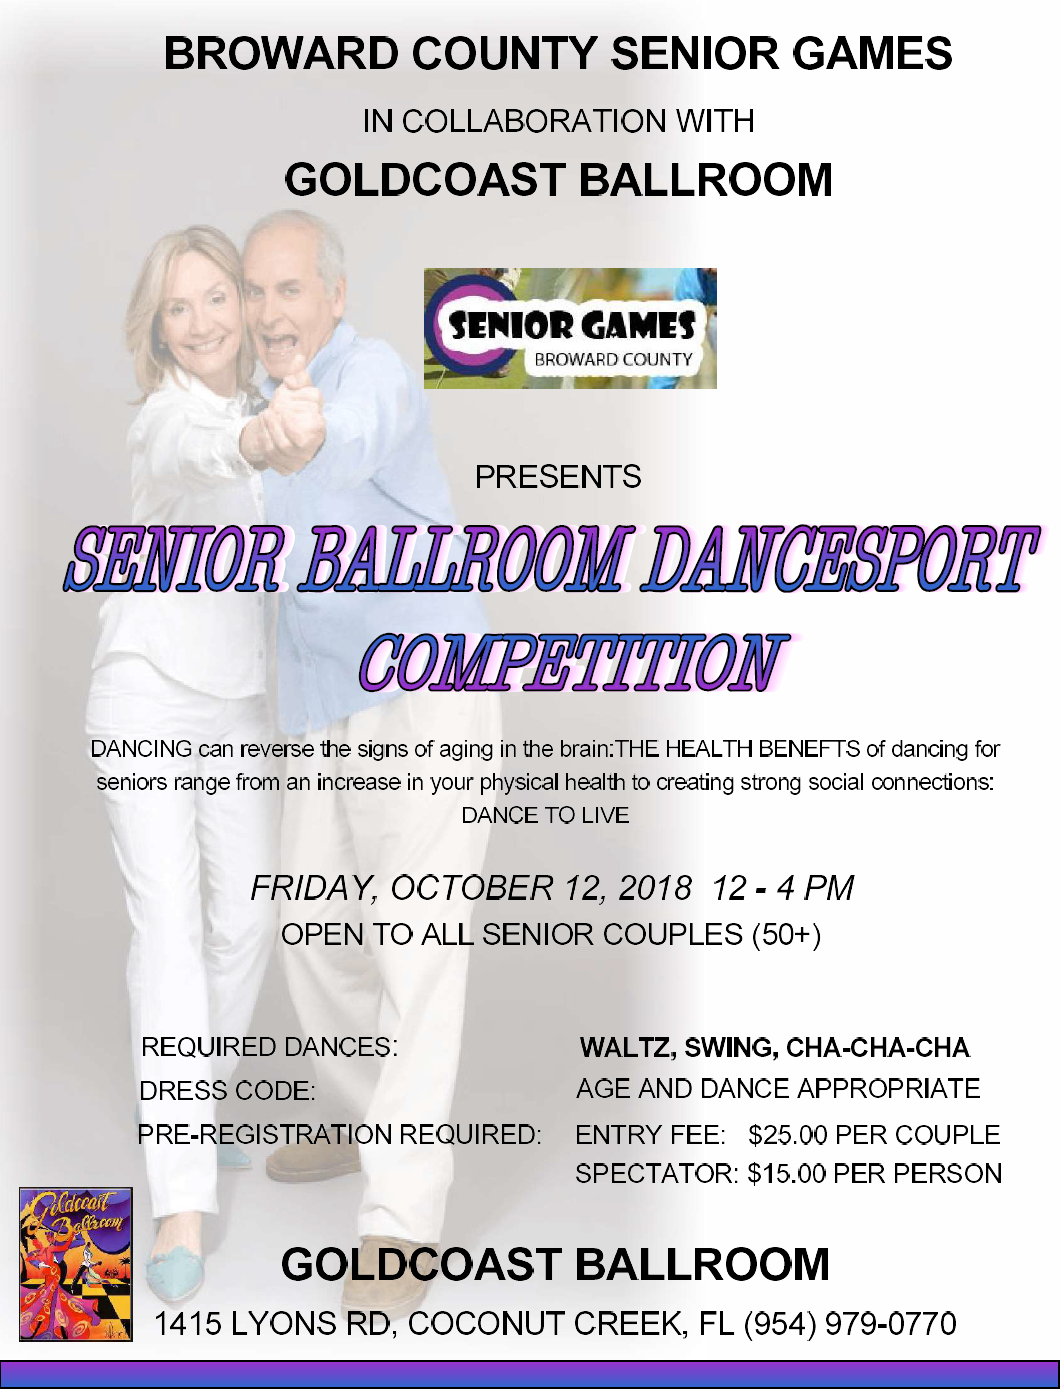 October 12, 2018 - Senior Ballroom Dancesport Competition by Broward Co Senior Games with Goldcoast Ballroom